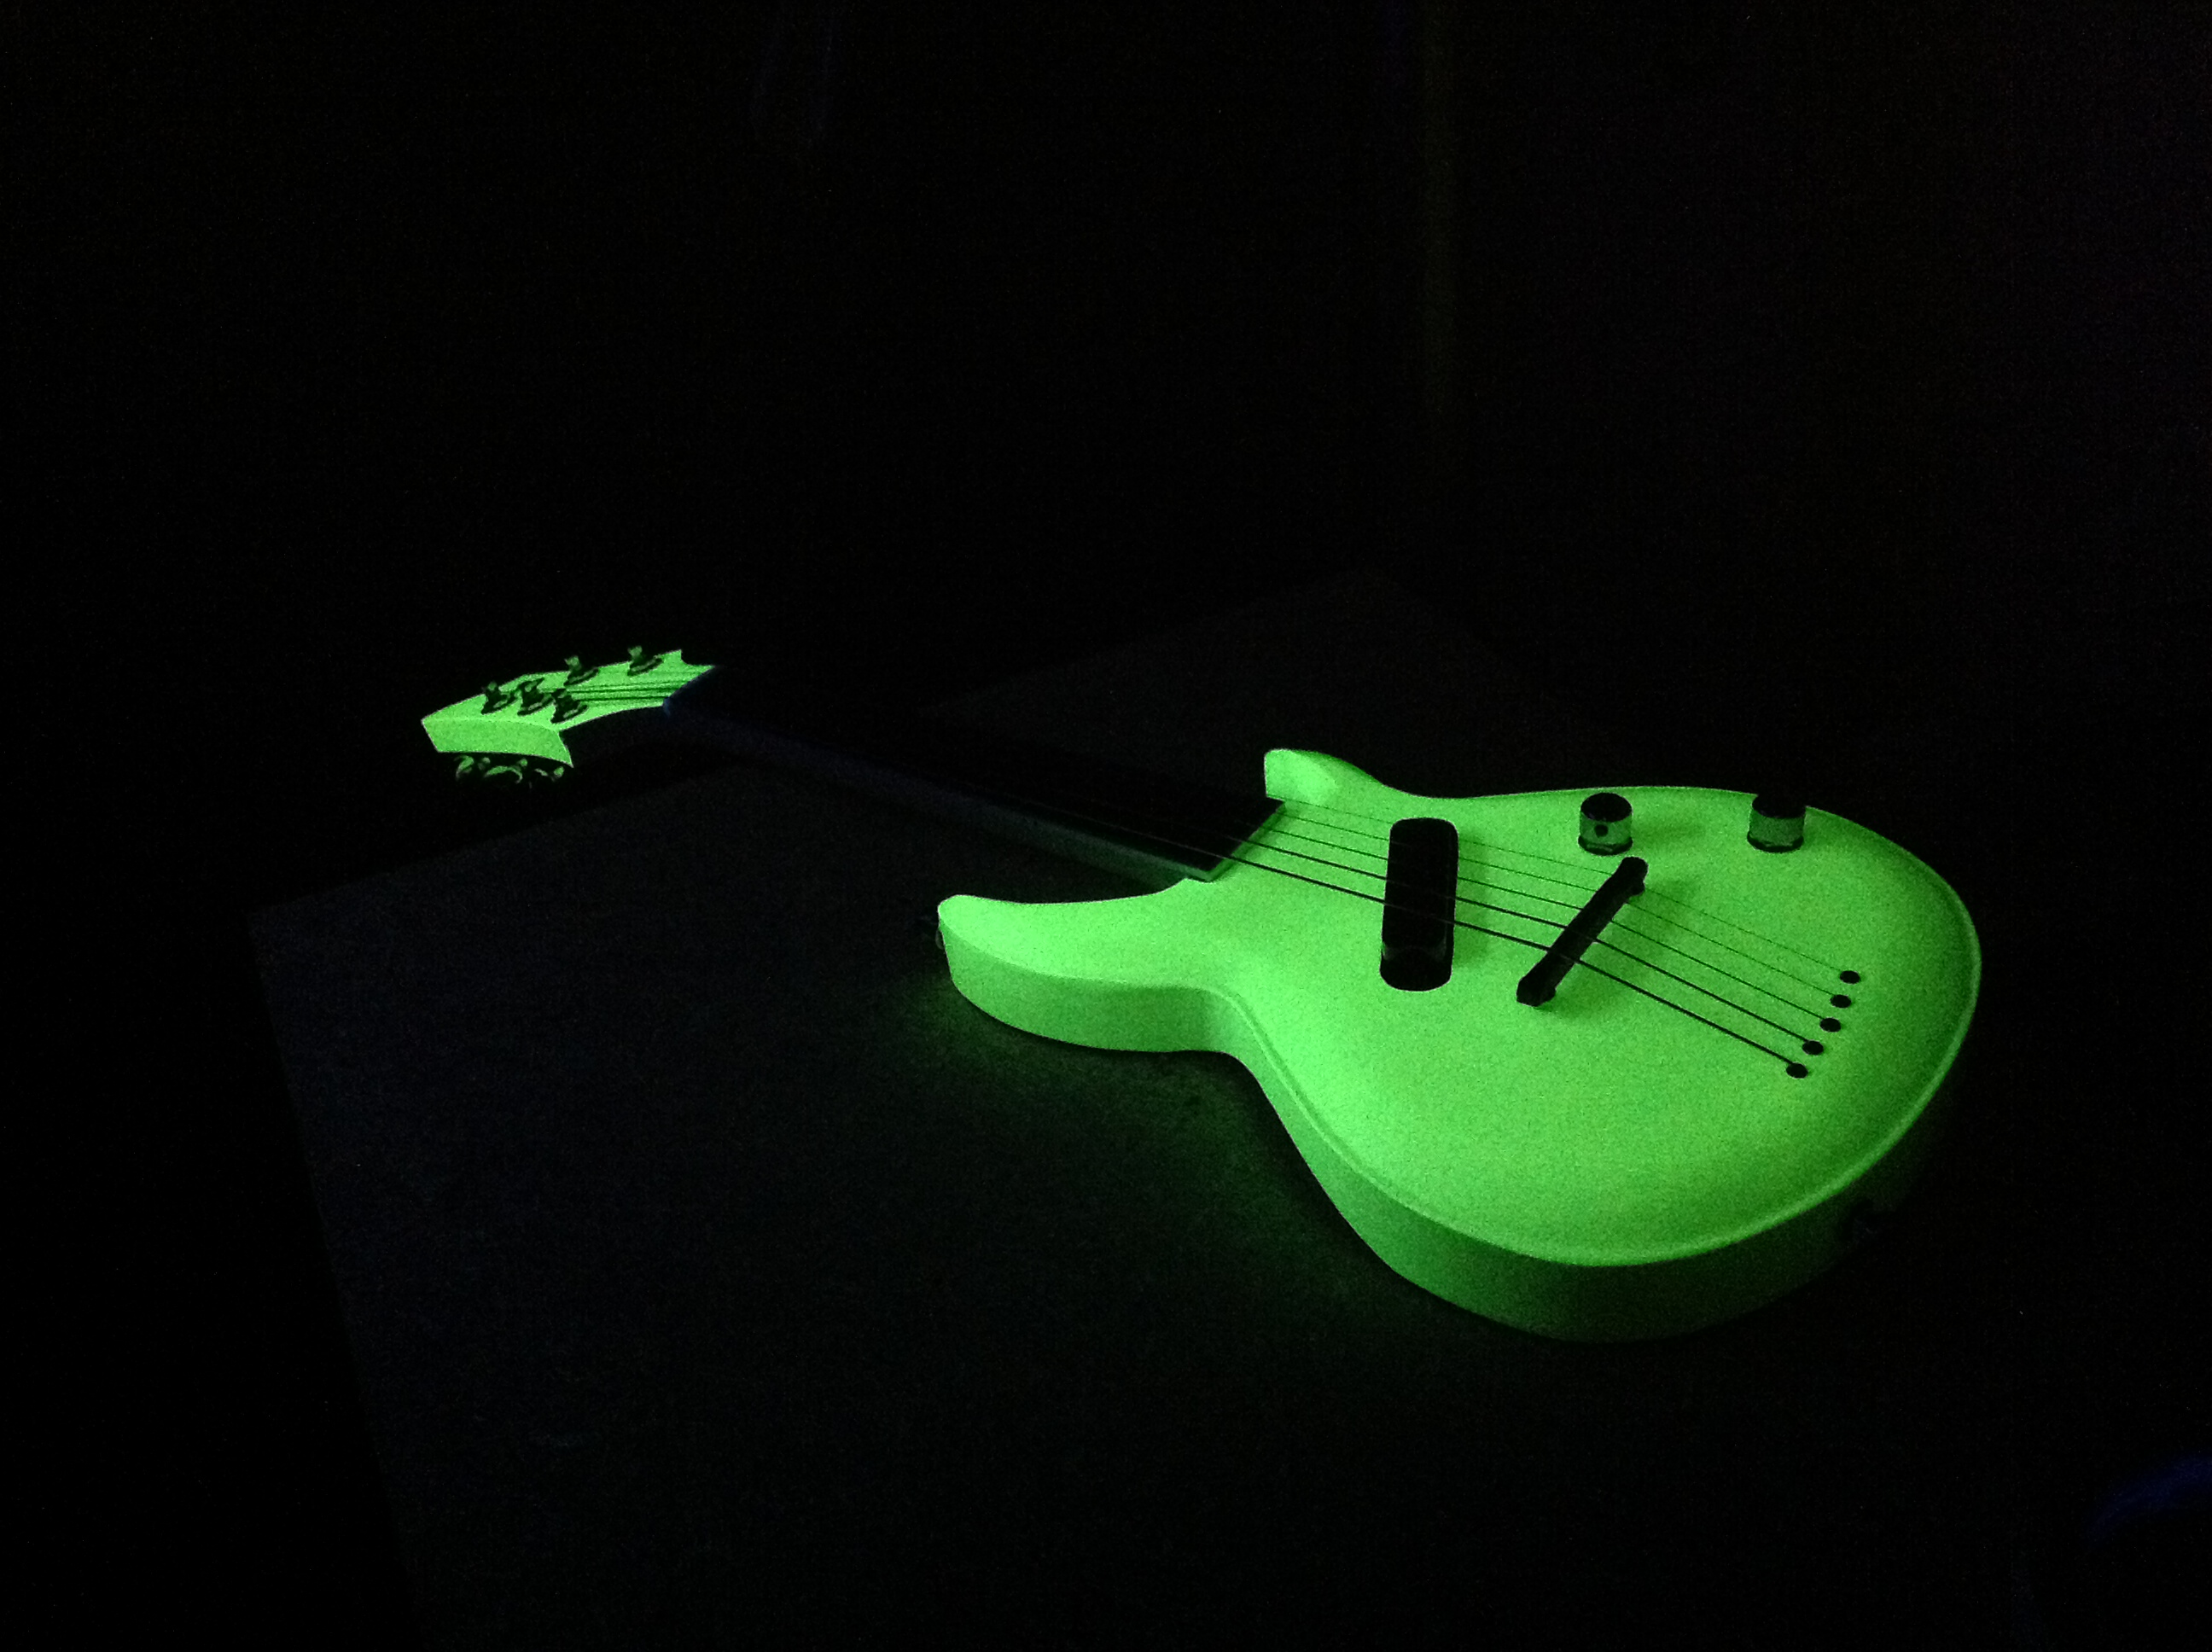 glow-in-the-dark-guitar-mandolin-1